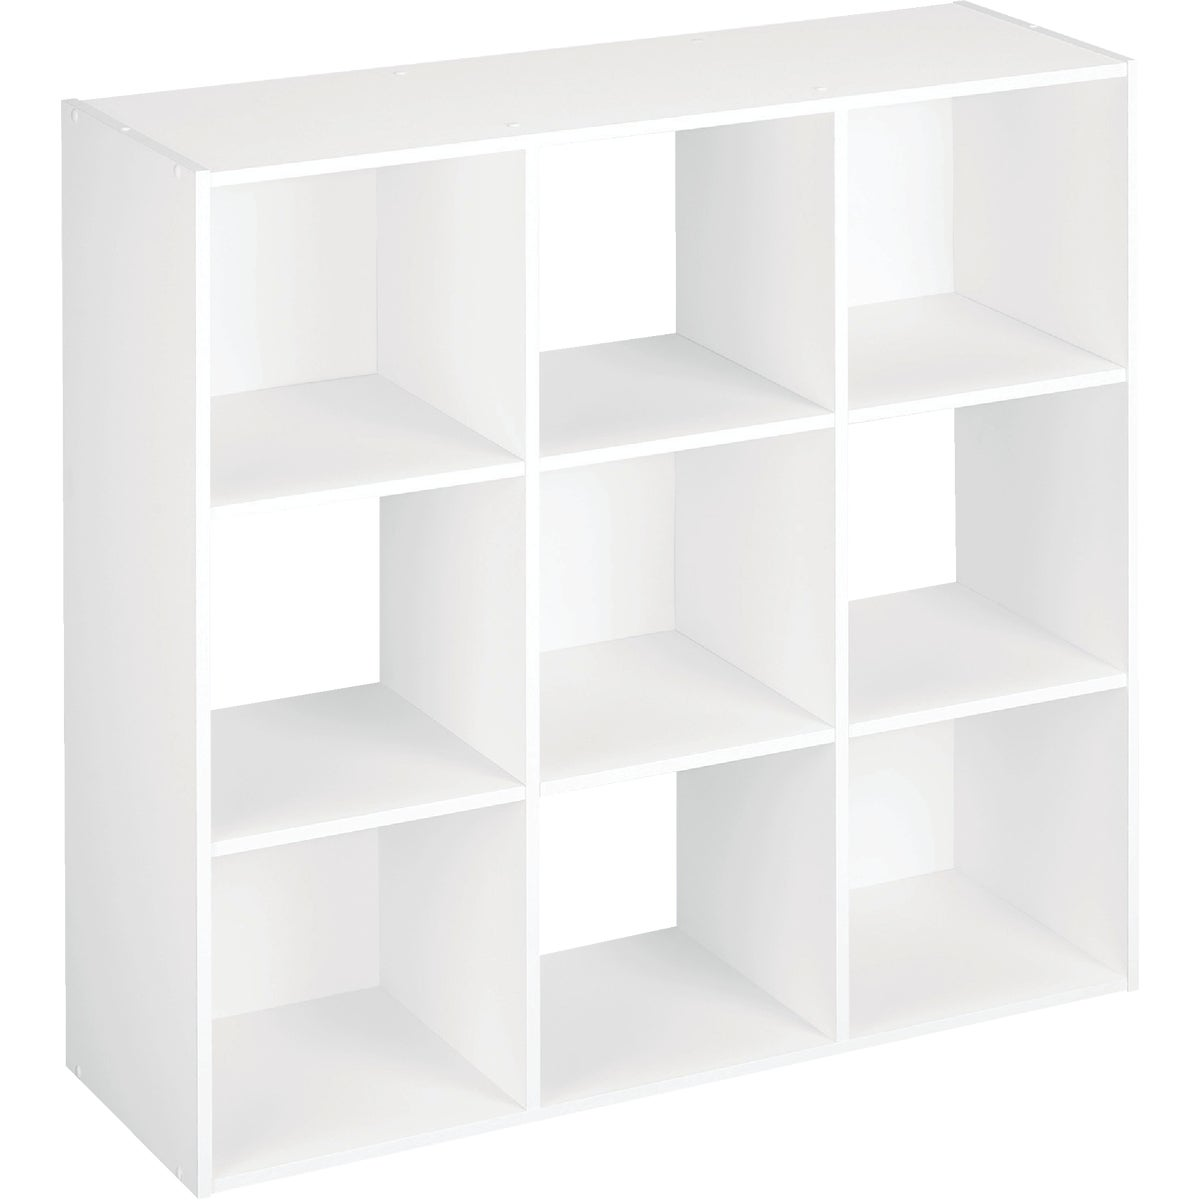 ClosetMaid Cubeicals Storage Stacker Organizer, 42100